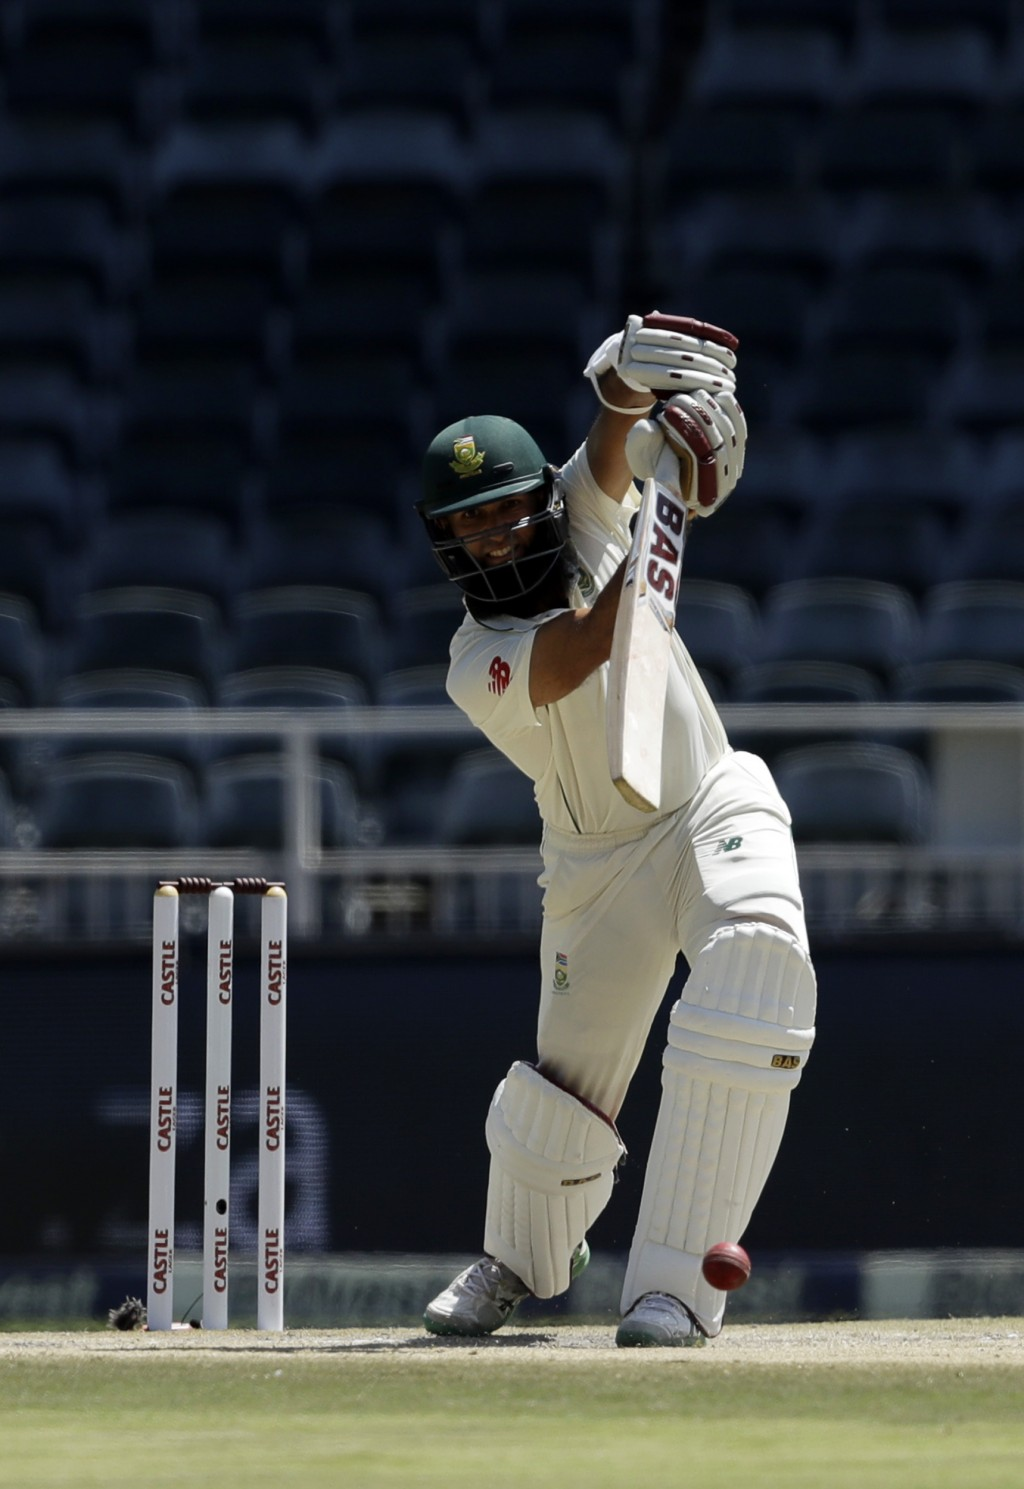 South Africa's batsman Hashim Amla plays a shot on day three of the third cricket test match between South Africa and Pakistan at the Wanderers stadiu